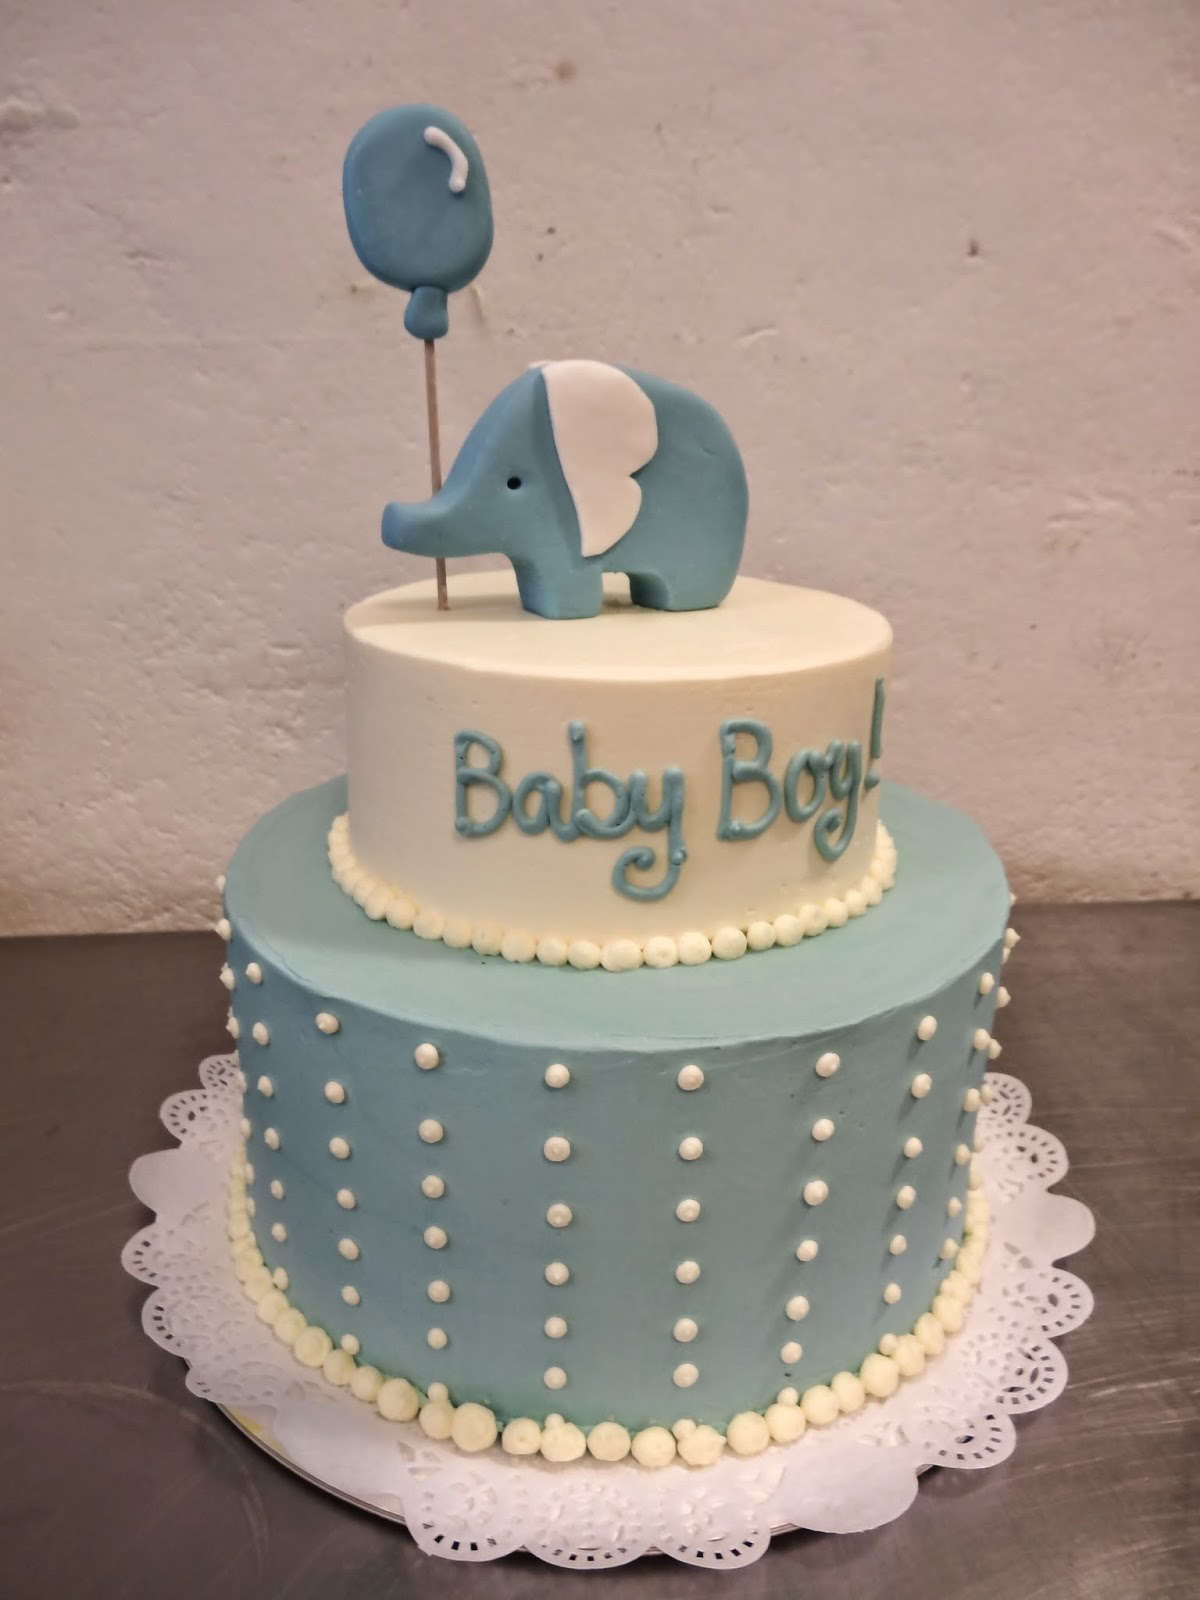 Simple Baby Boy Cakes